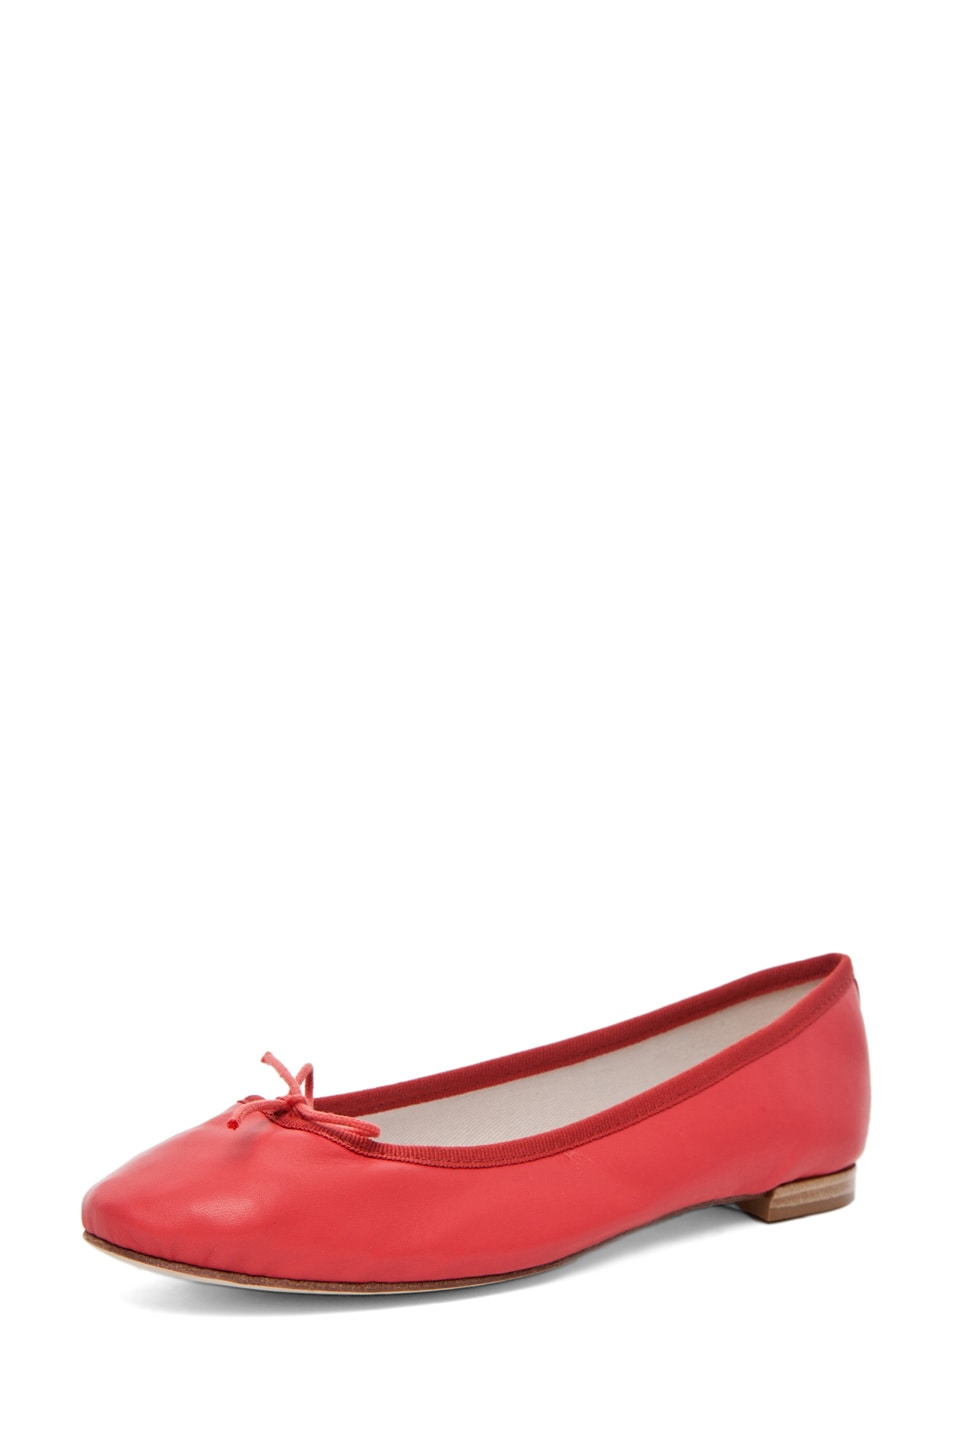 Image 2 of Repetto Lambskin Flat in Coral